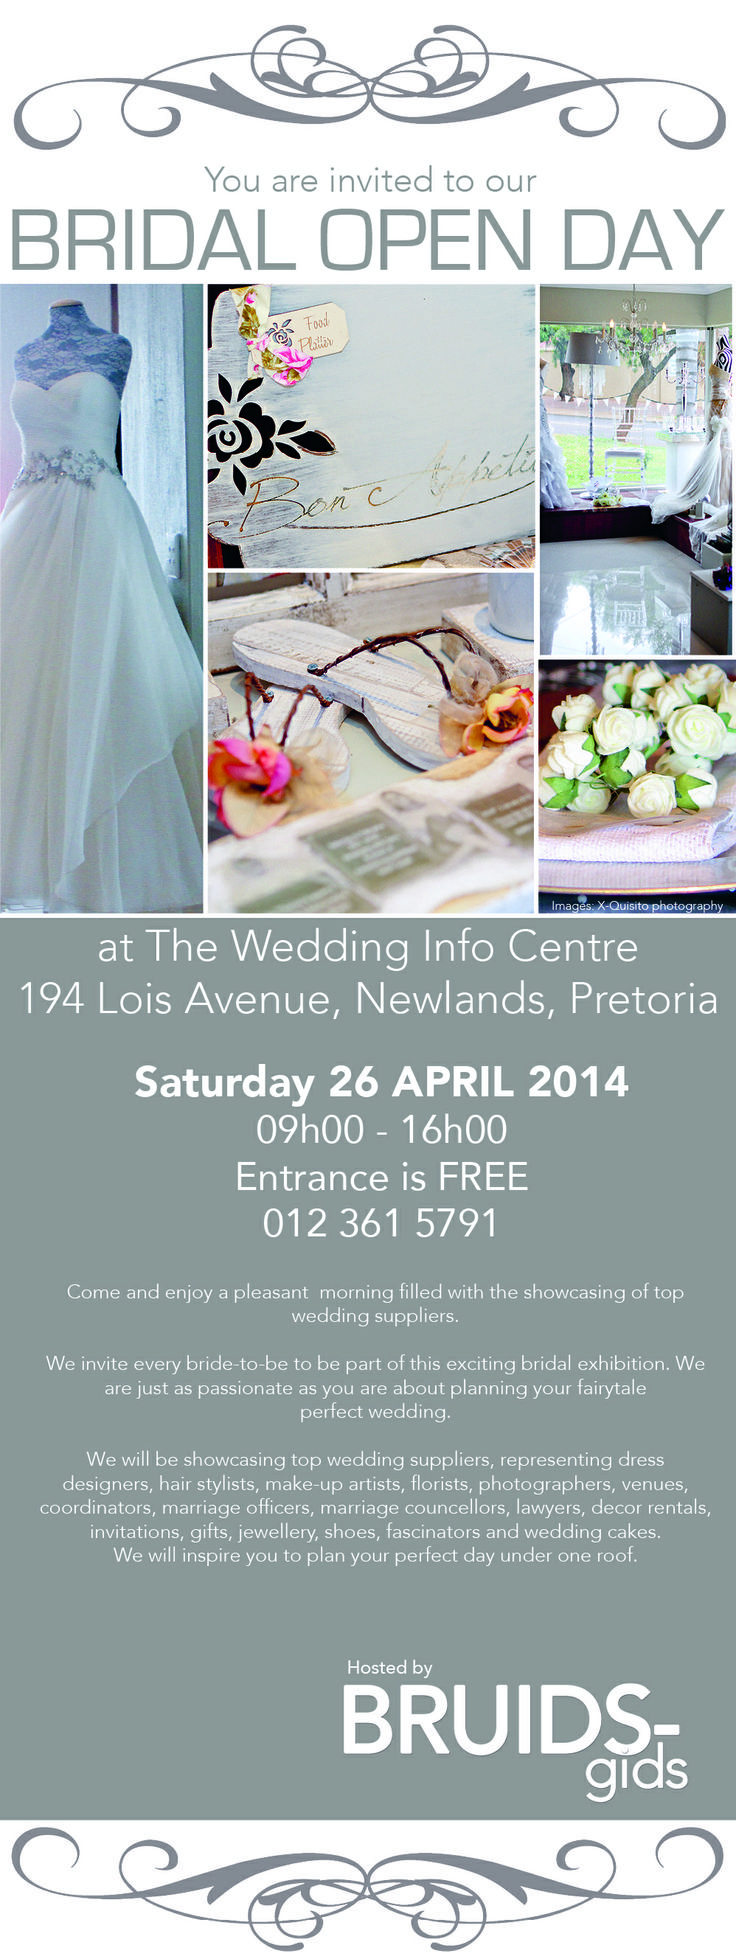 Visit our FREE Bridal Expo on 26 April 2014